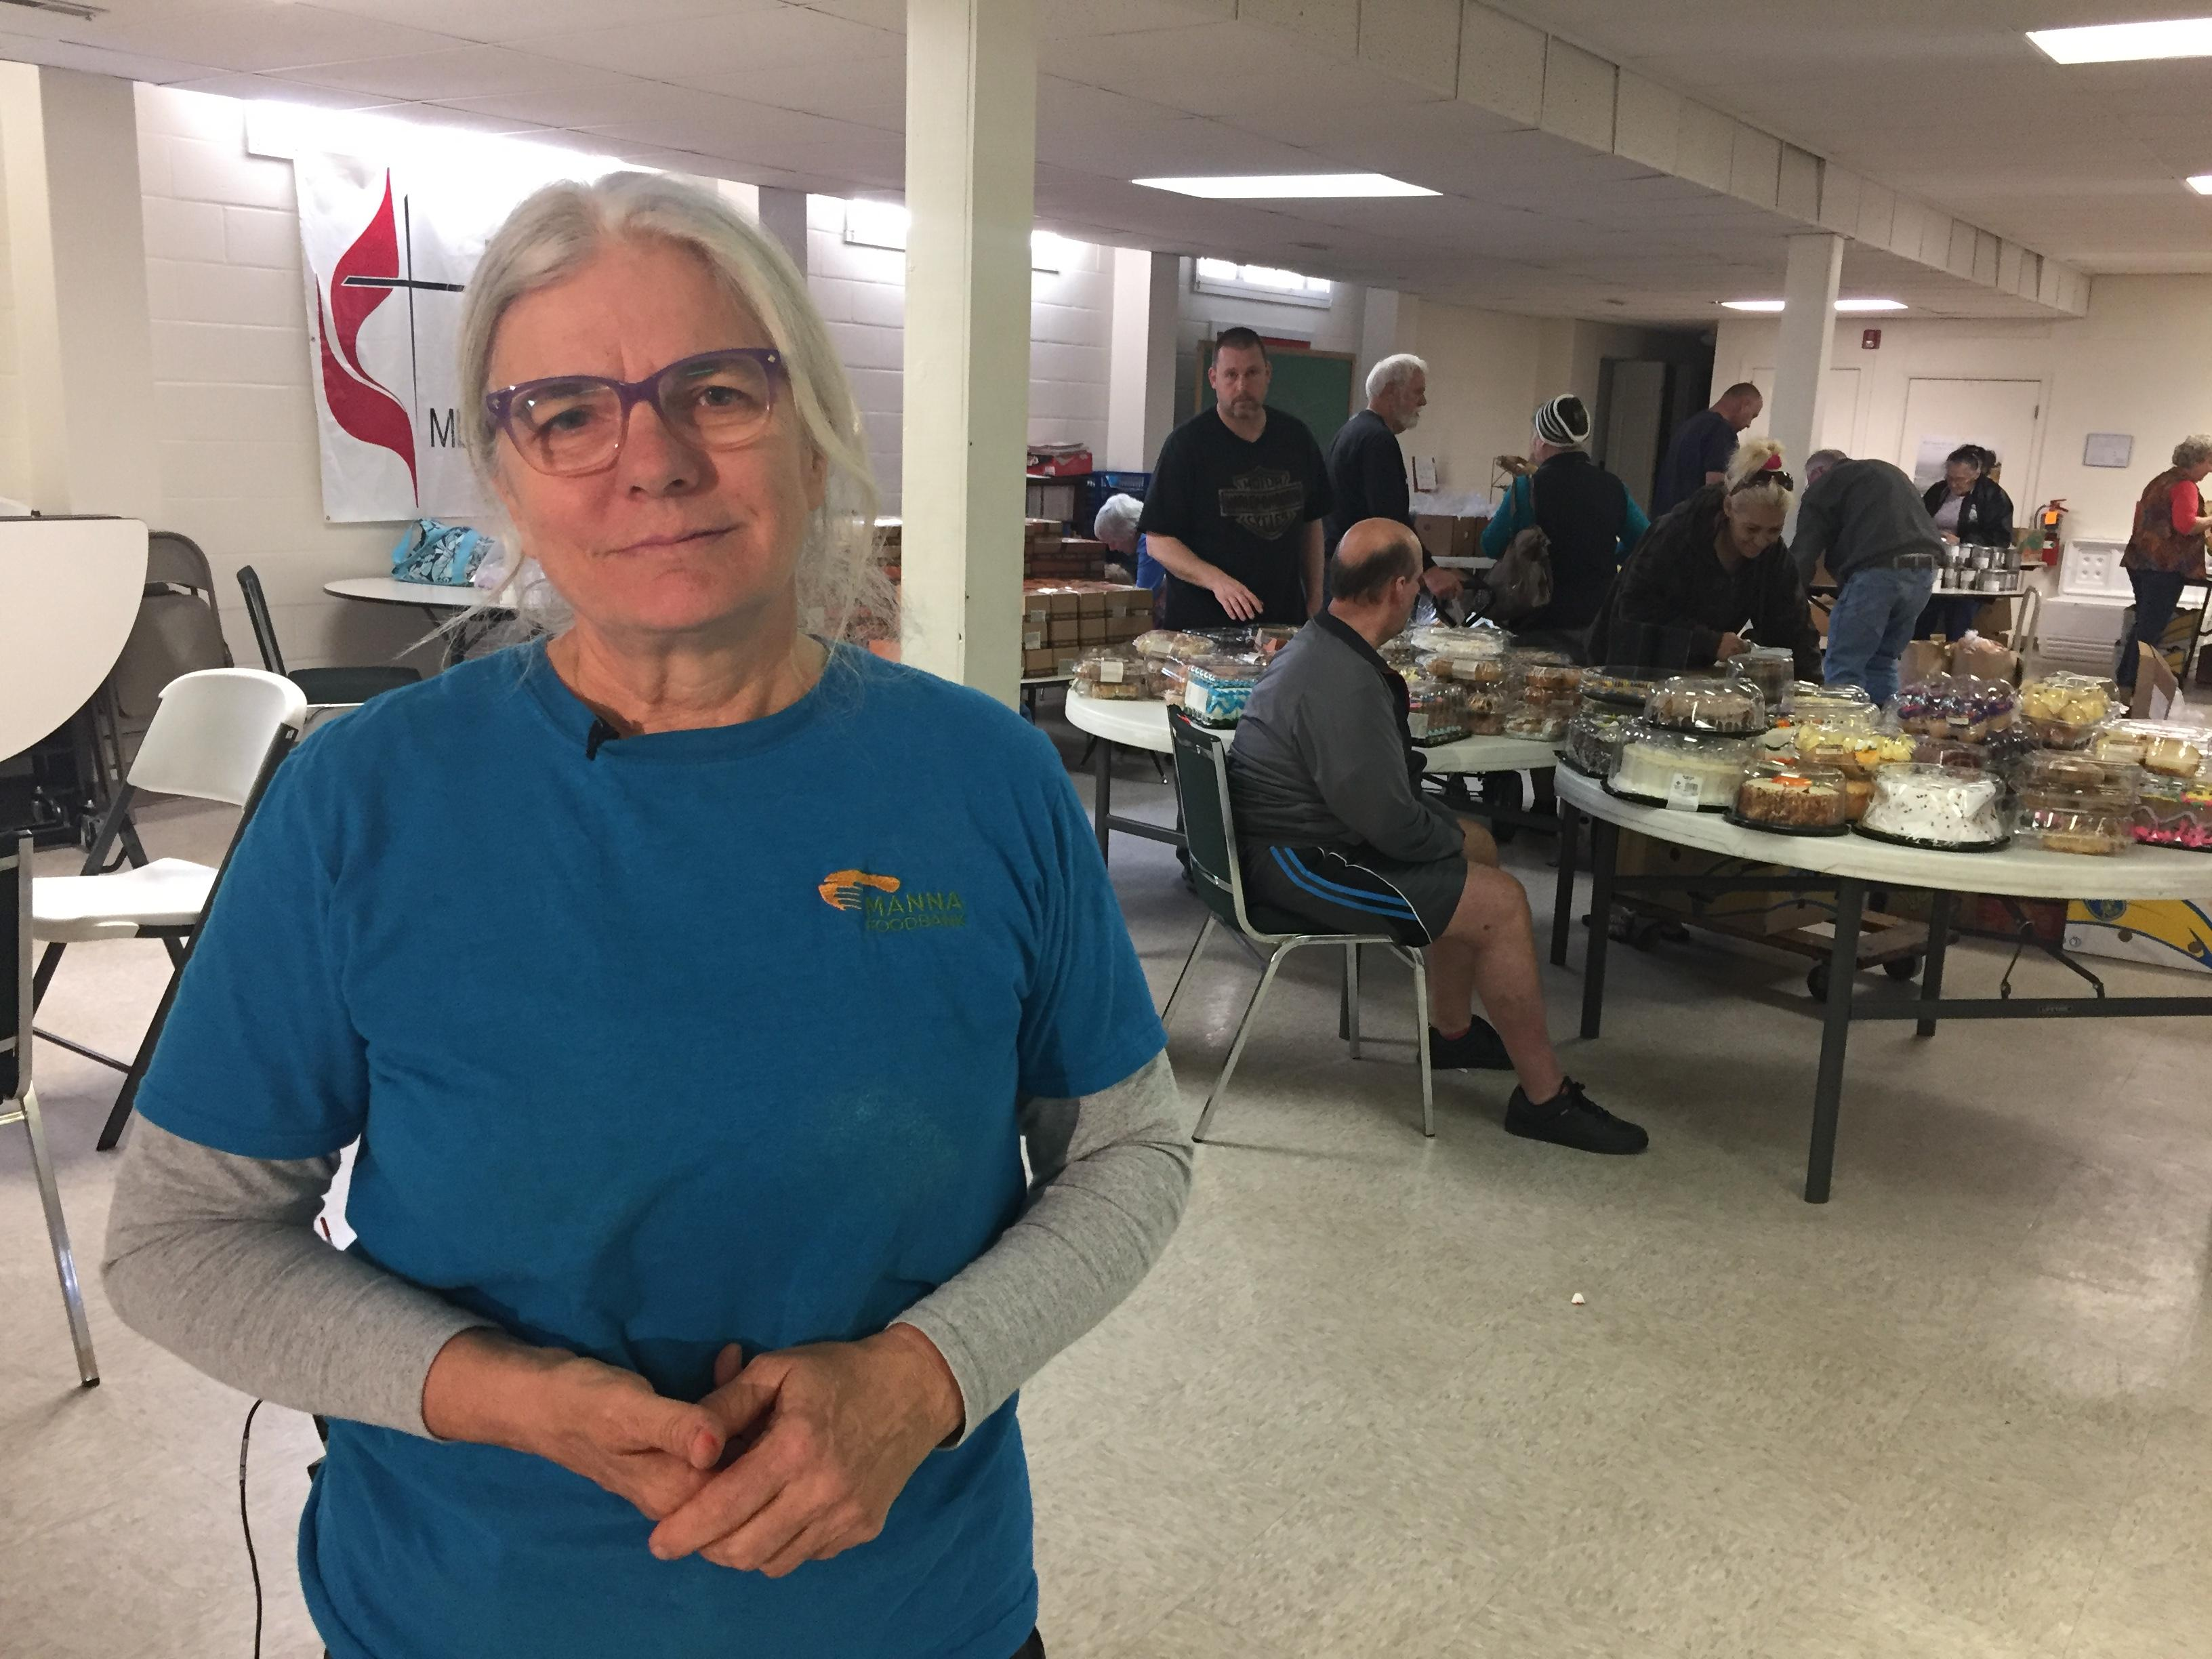 Our Person Of the Week is Jan Ianniello, who first began volunteering for Manna Food Bank back in the '90s. (Photo credit: John Le, WLOS)